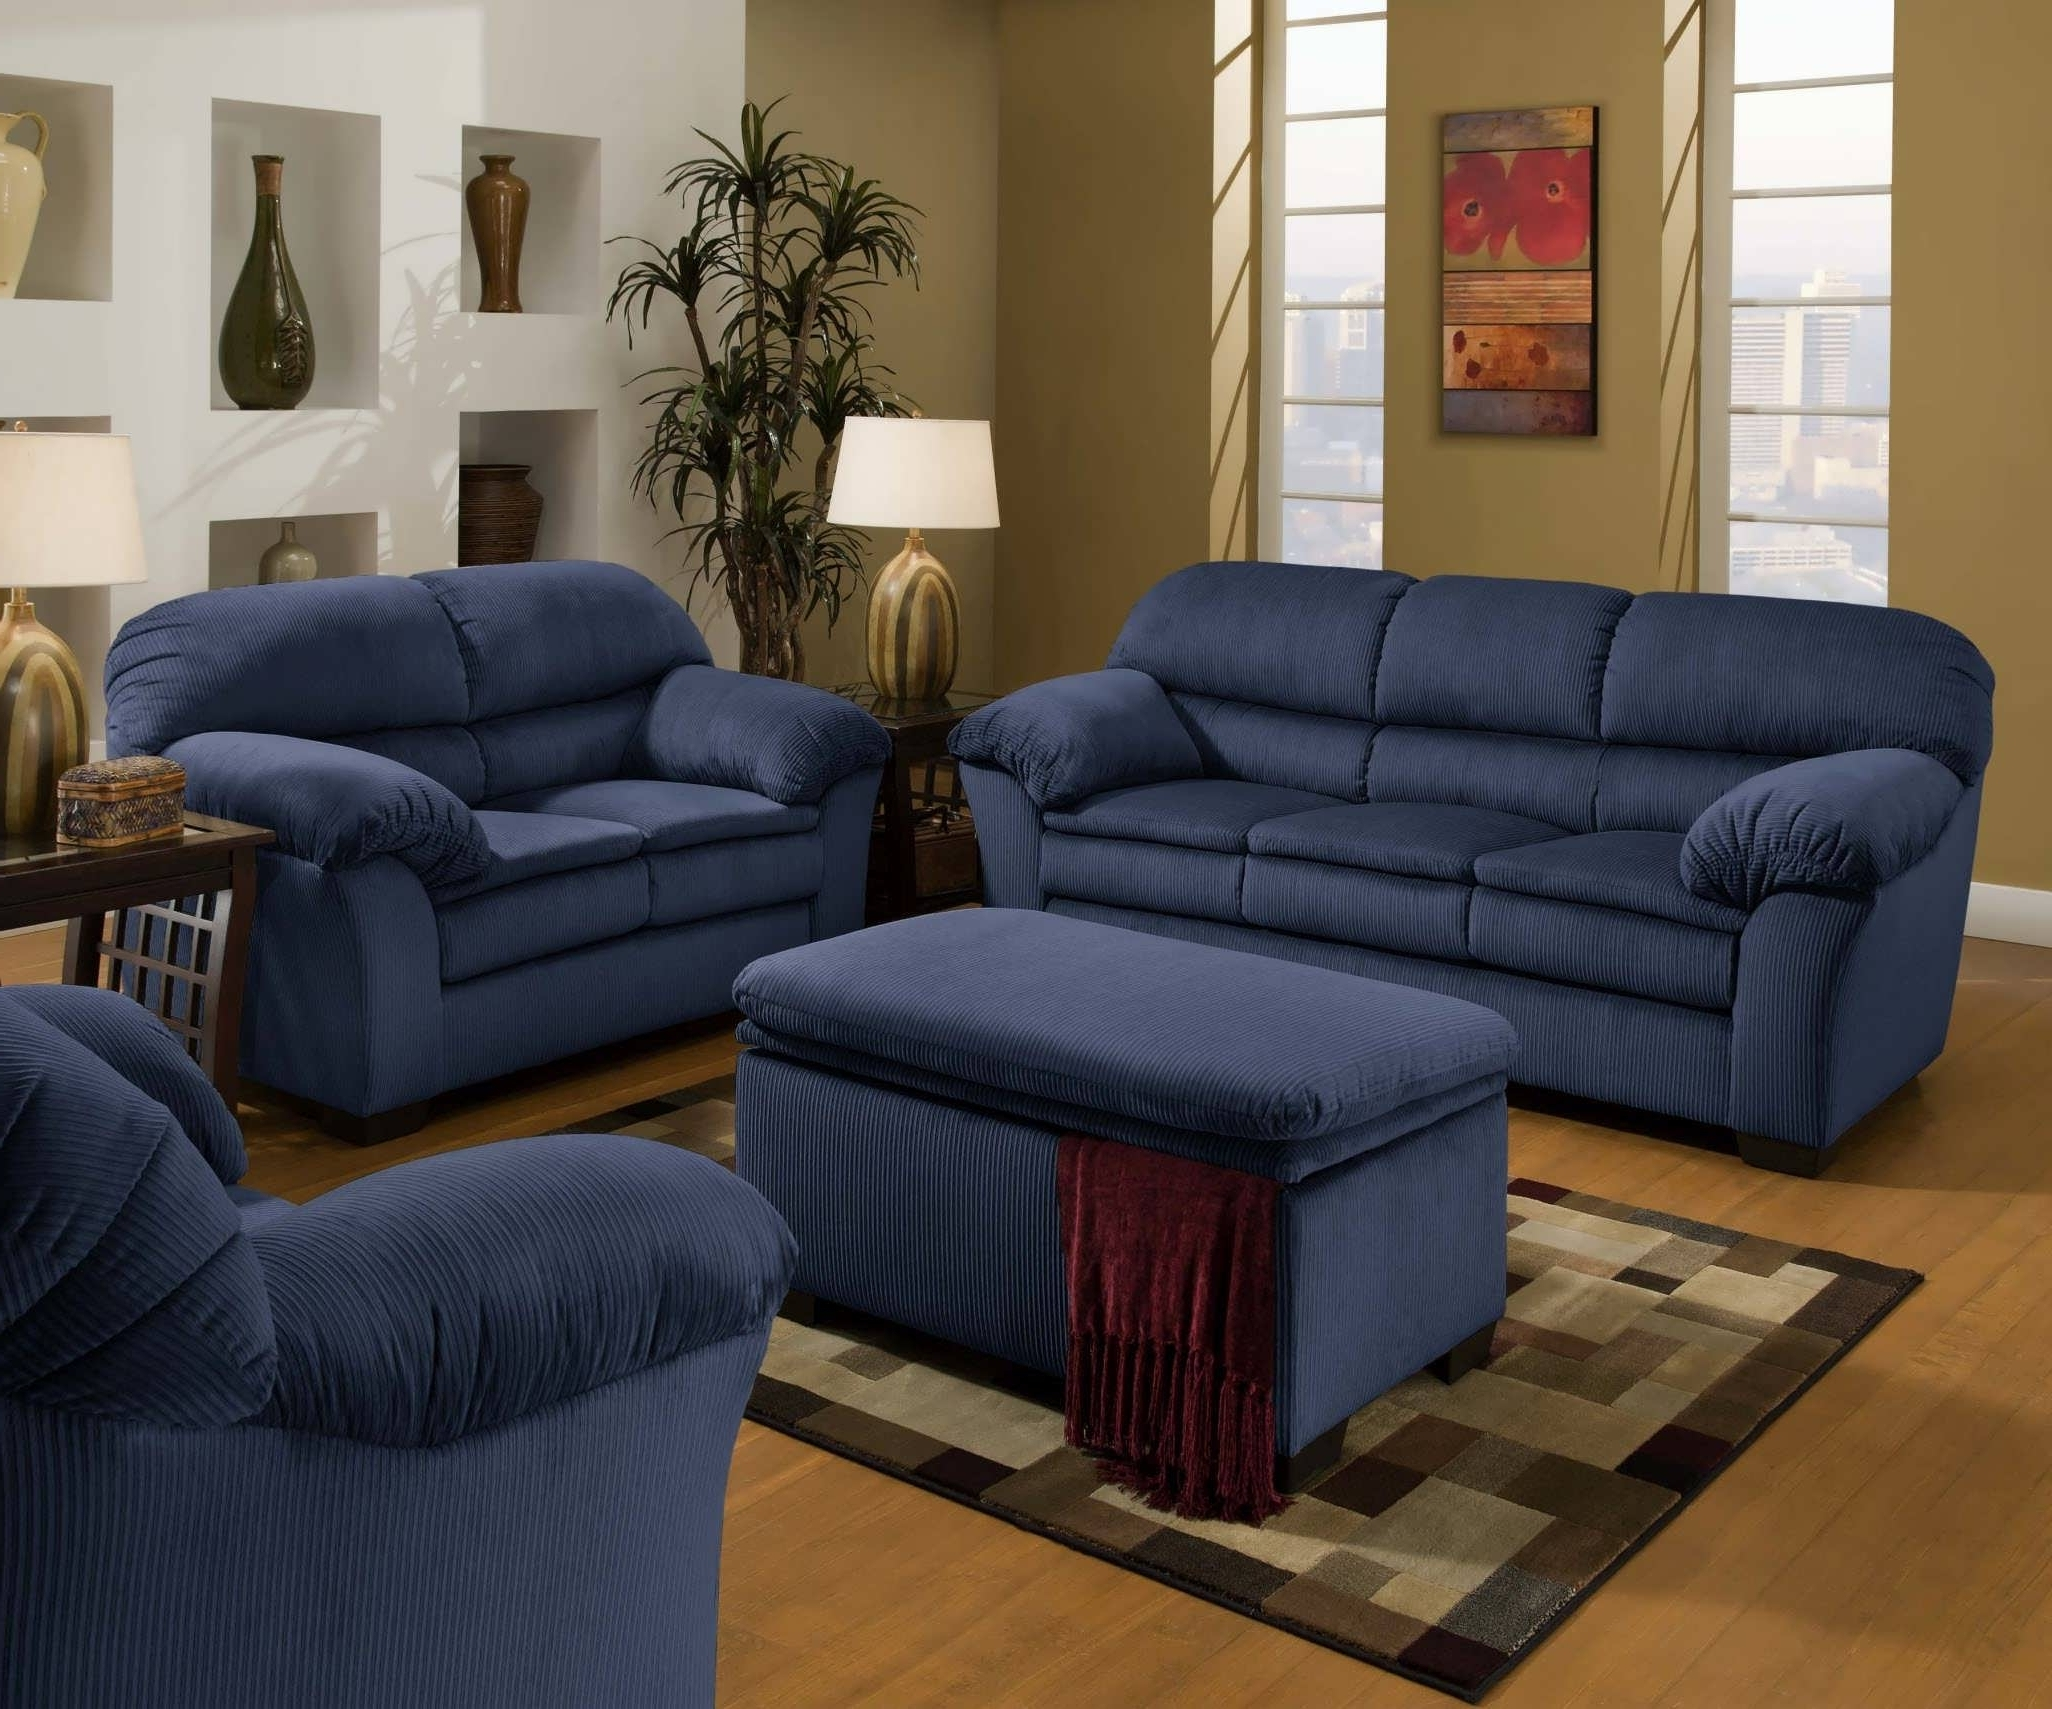 Well Known Blue Sofa Chairs Pertaining To Blue Sofa Set Large Office Chairs Ottomans & Storage Dressers 17Ec (View 10 of 20)